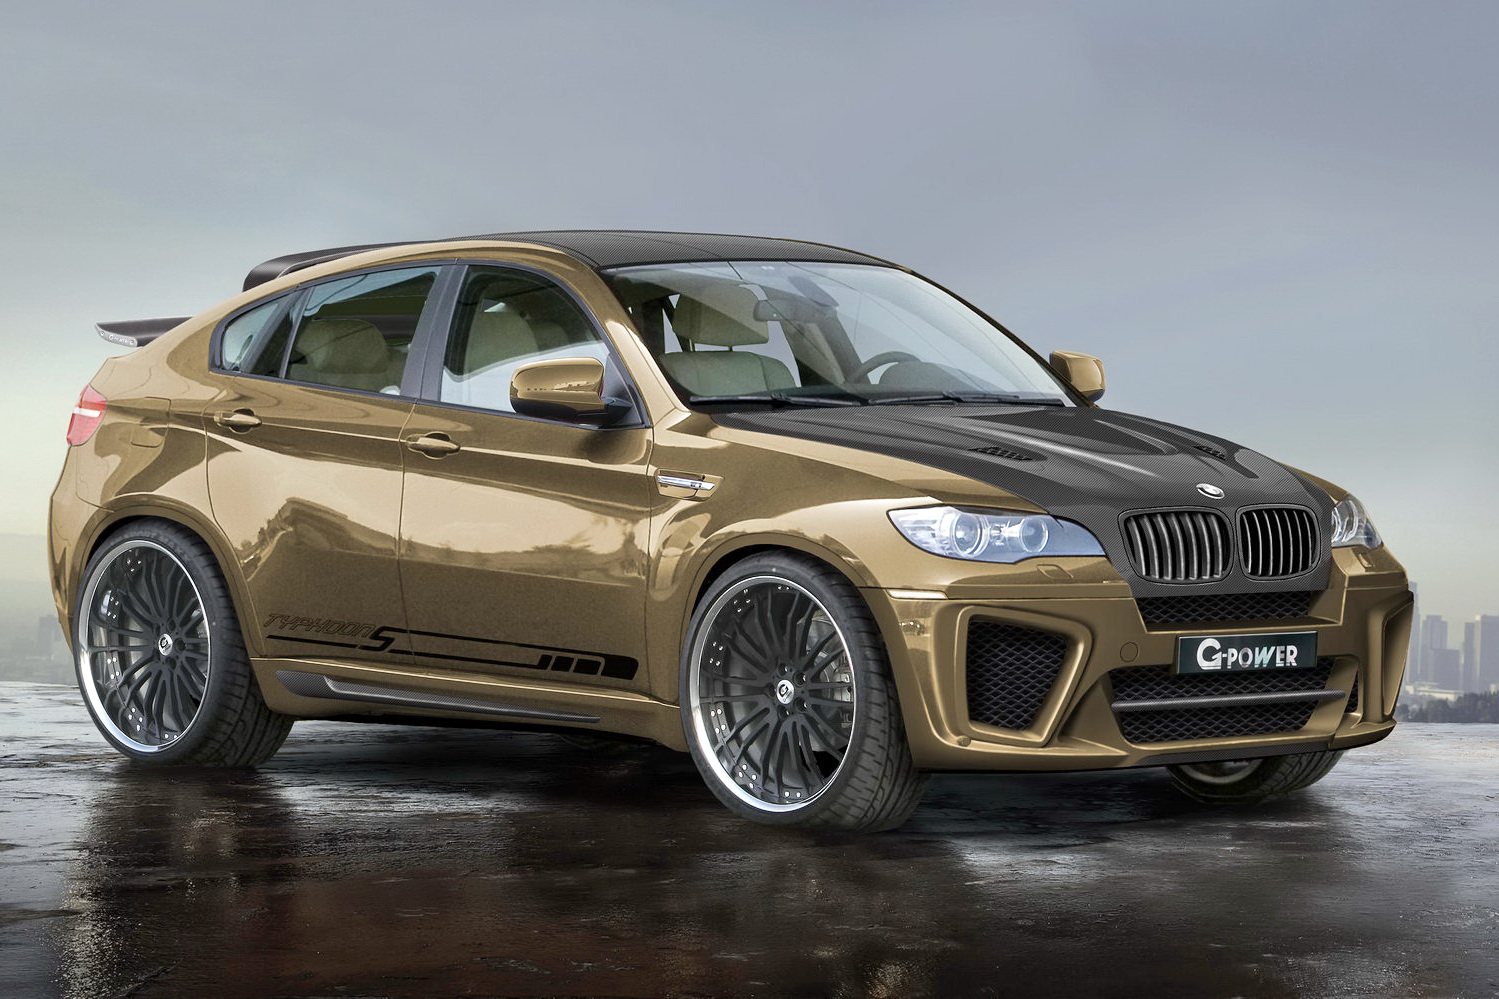 Tuning G Power Modifed The New Bmw X5m And X6m Photos It S Your Auto World New Cars